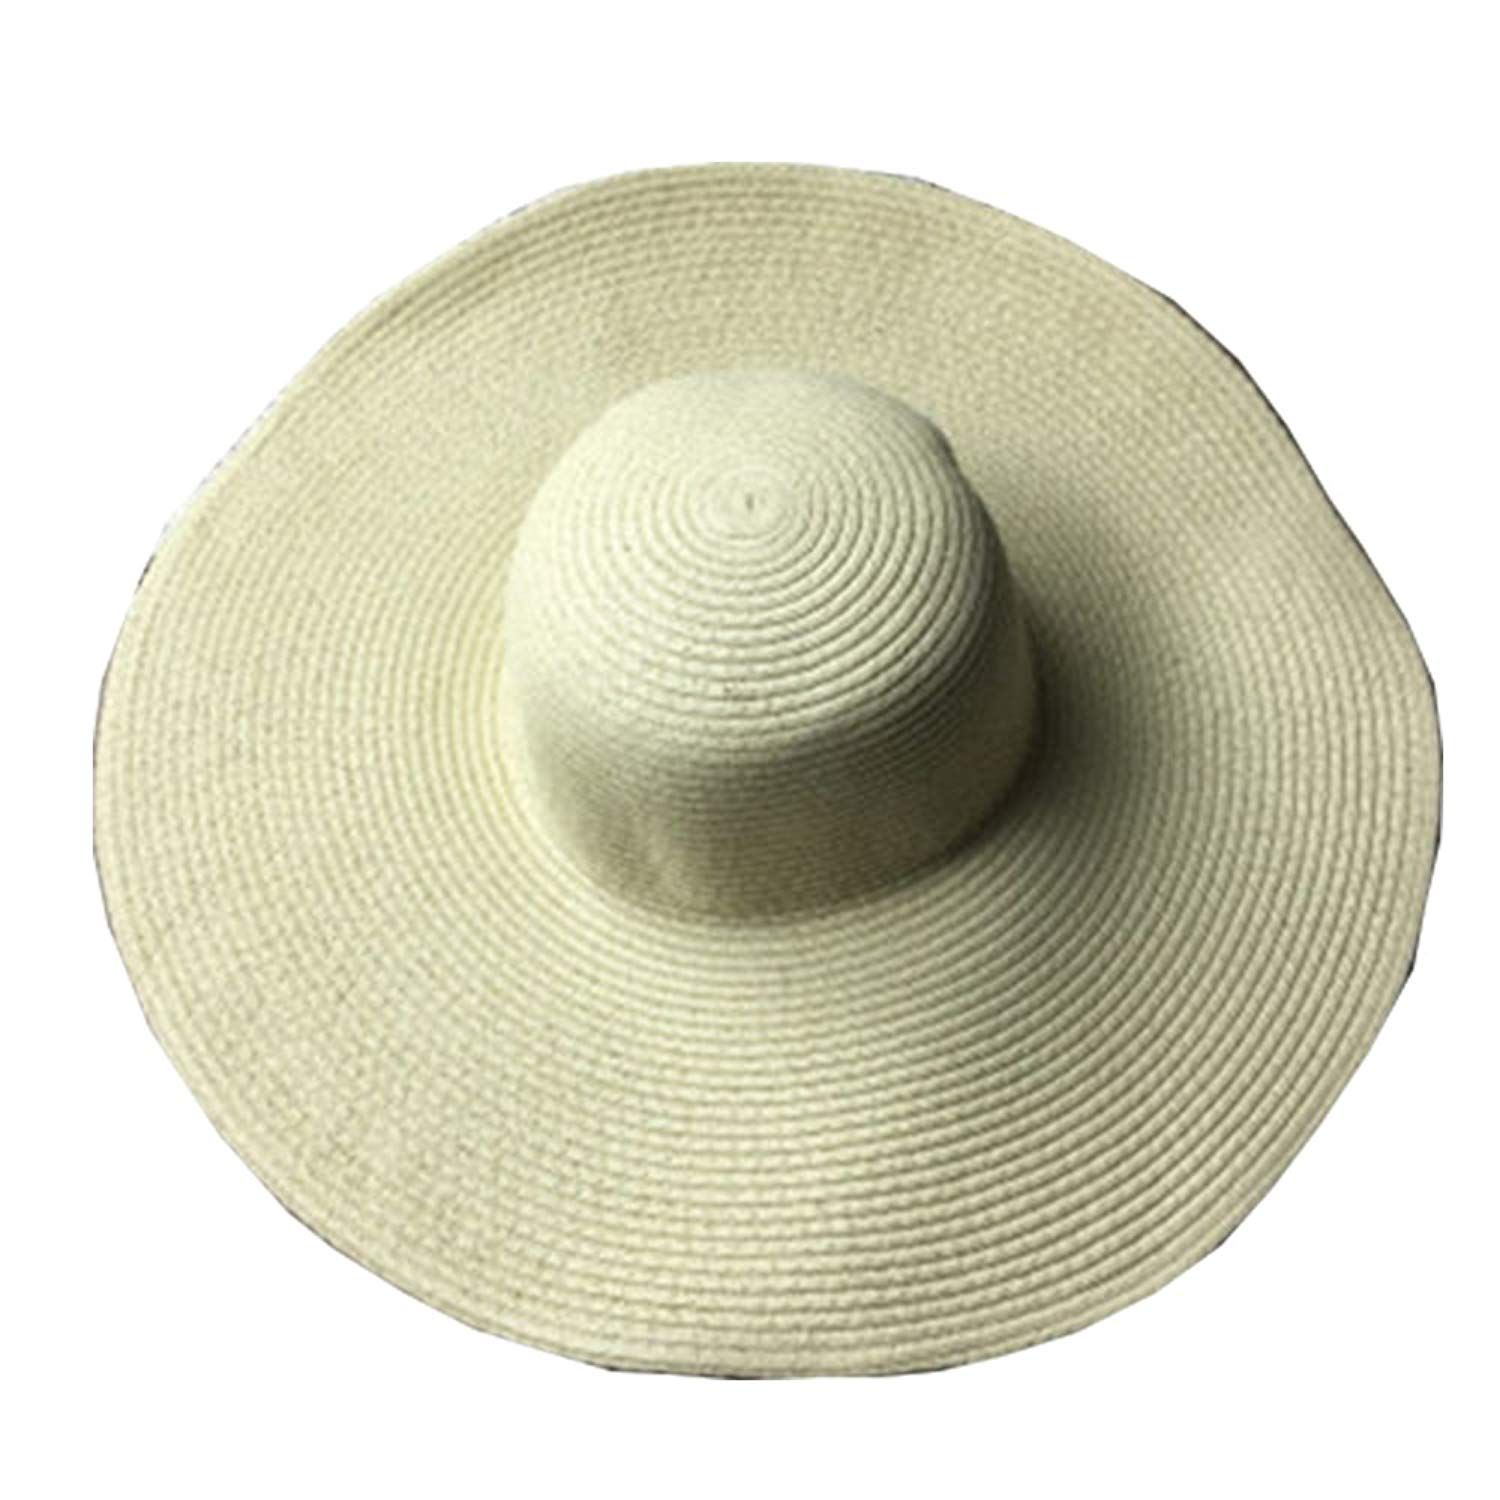 d8290efe536 Get Quotations · Gogolan Summer New Style Women Ladies Straw Hat Hawaii Sun  Hat Beach Hat Wide Brim